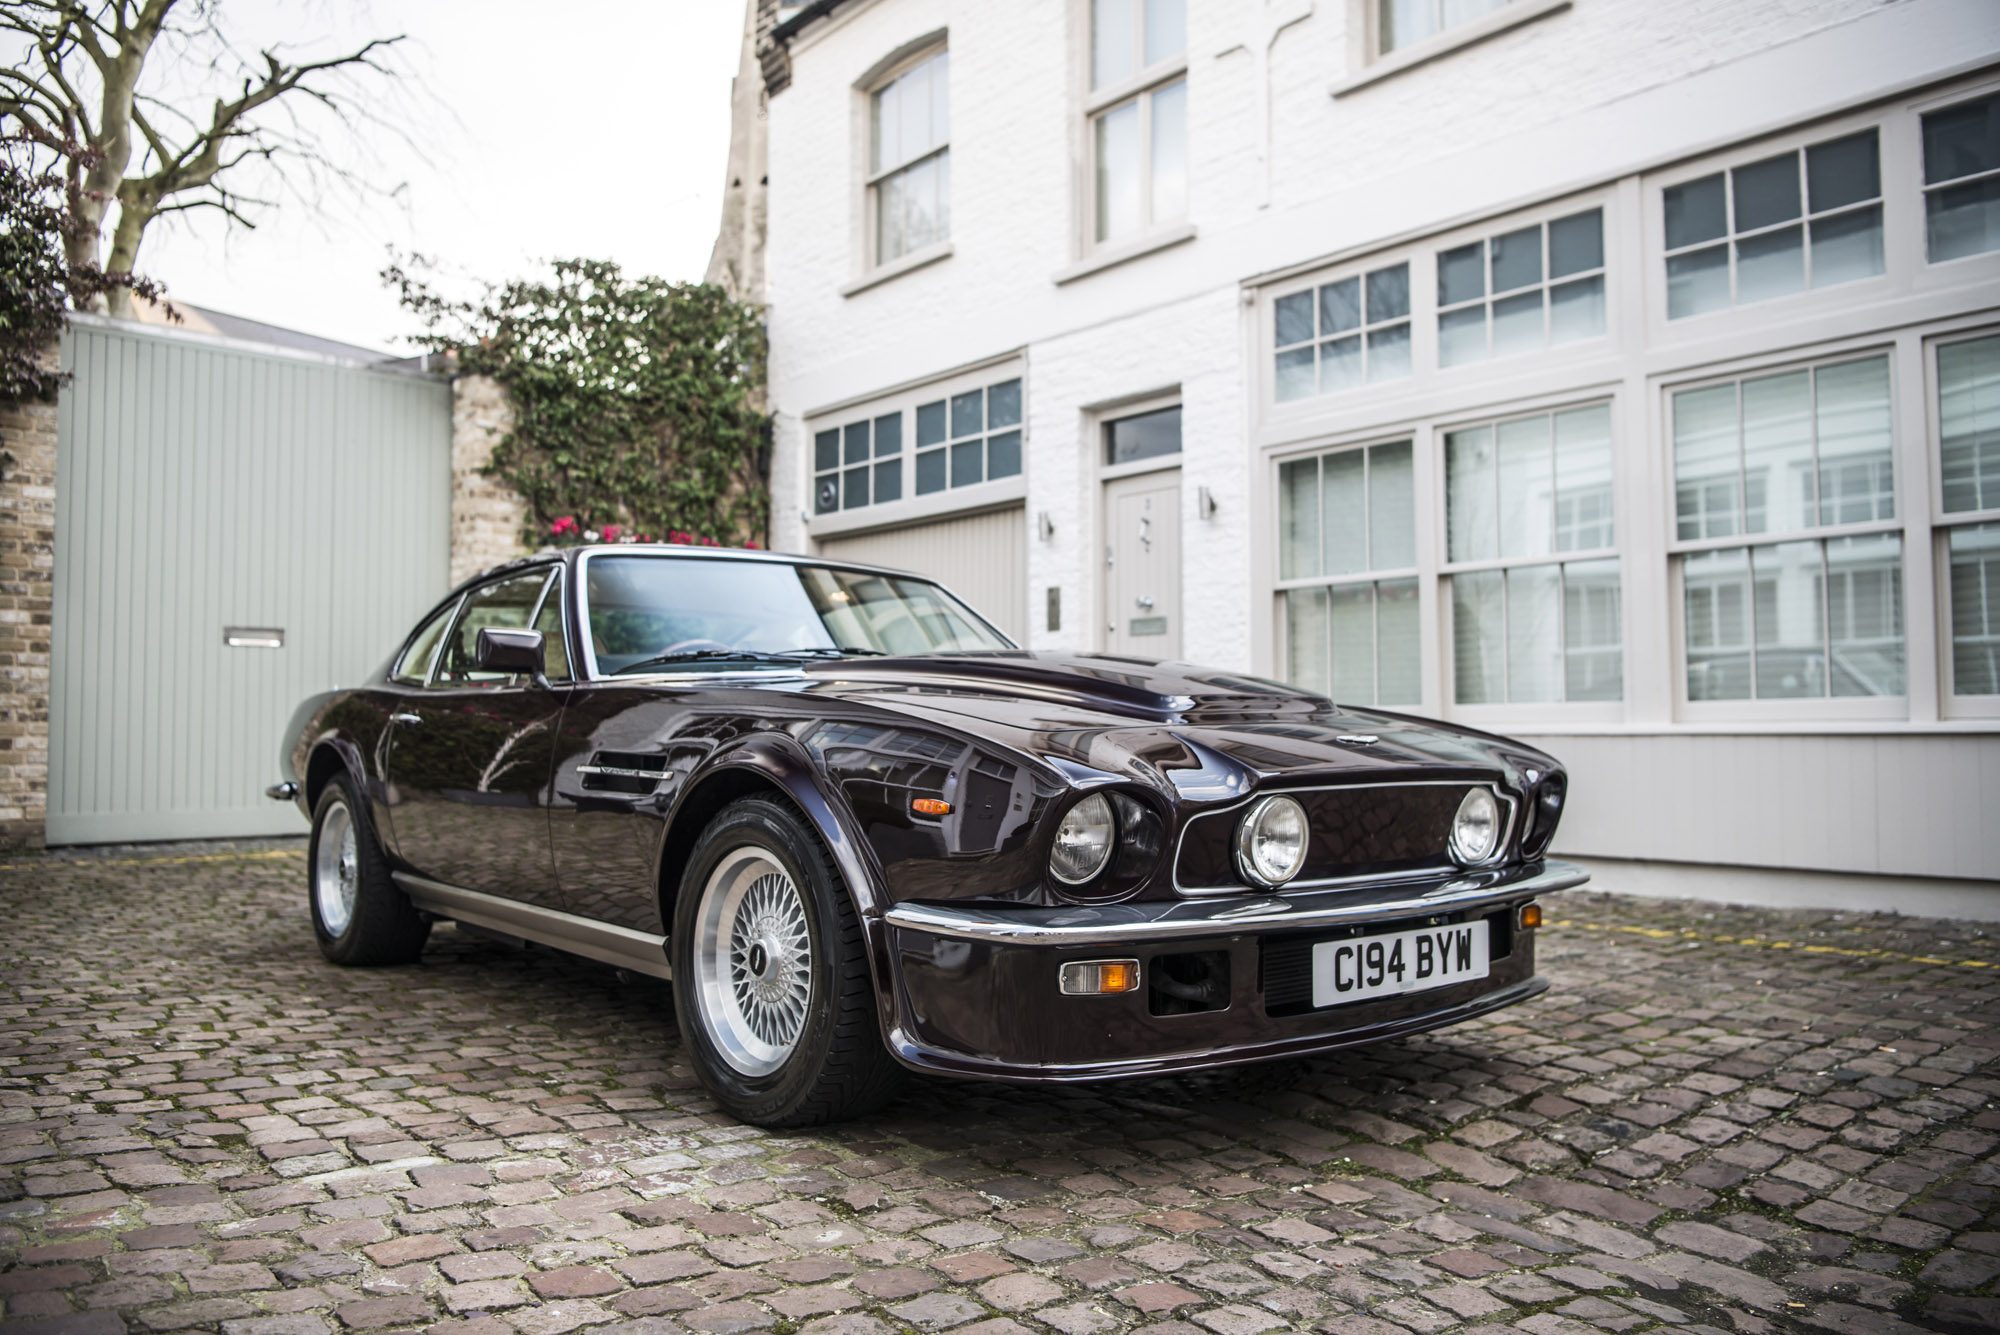 Right Hand Drive Cars For Sale >> 1985 Aston Martin V8 Vantage | Previously Sold | FISKENS